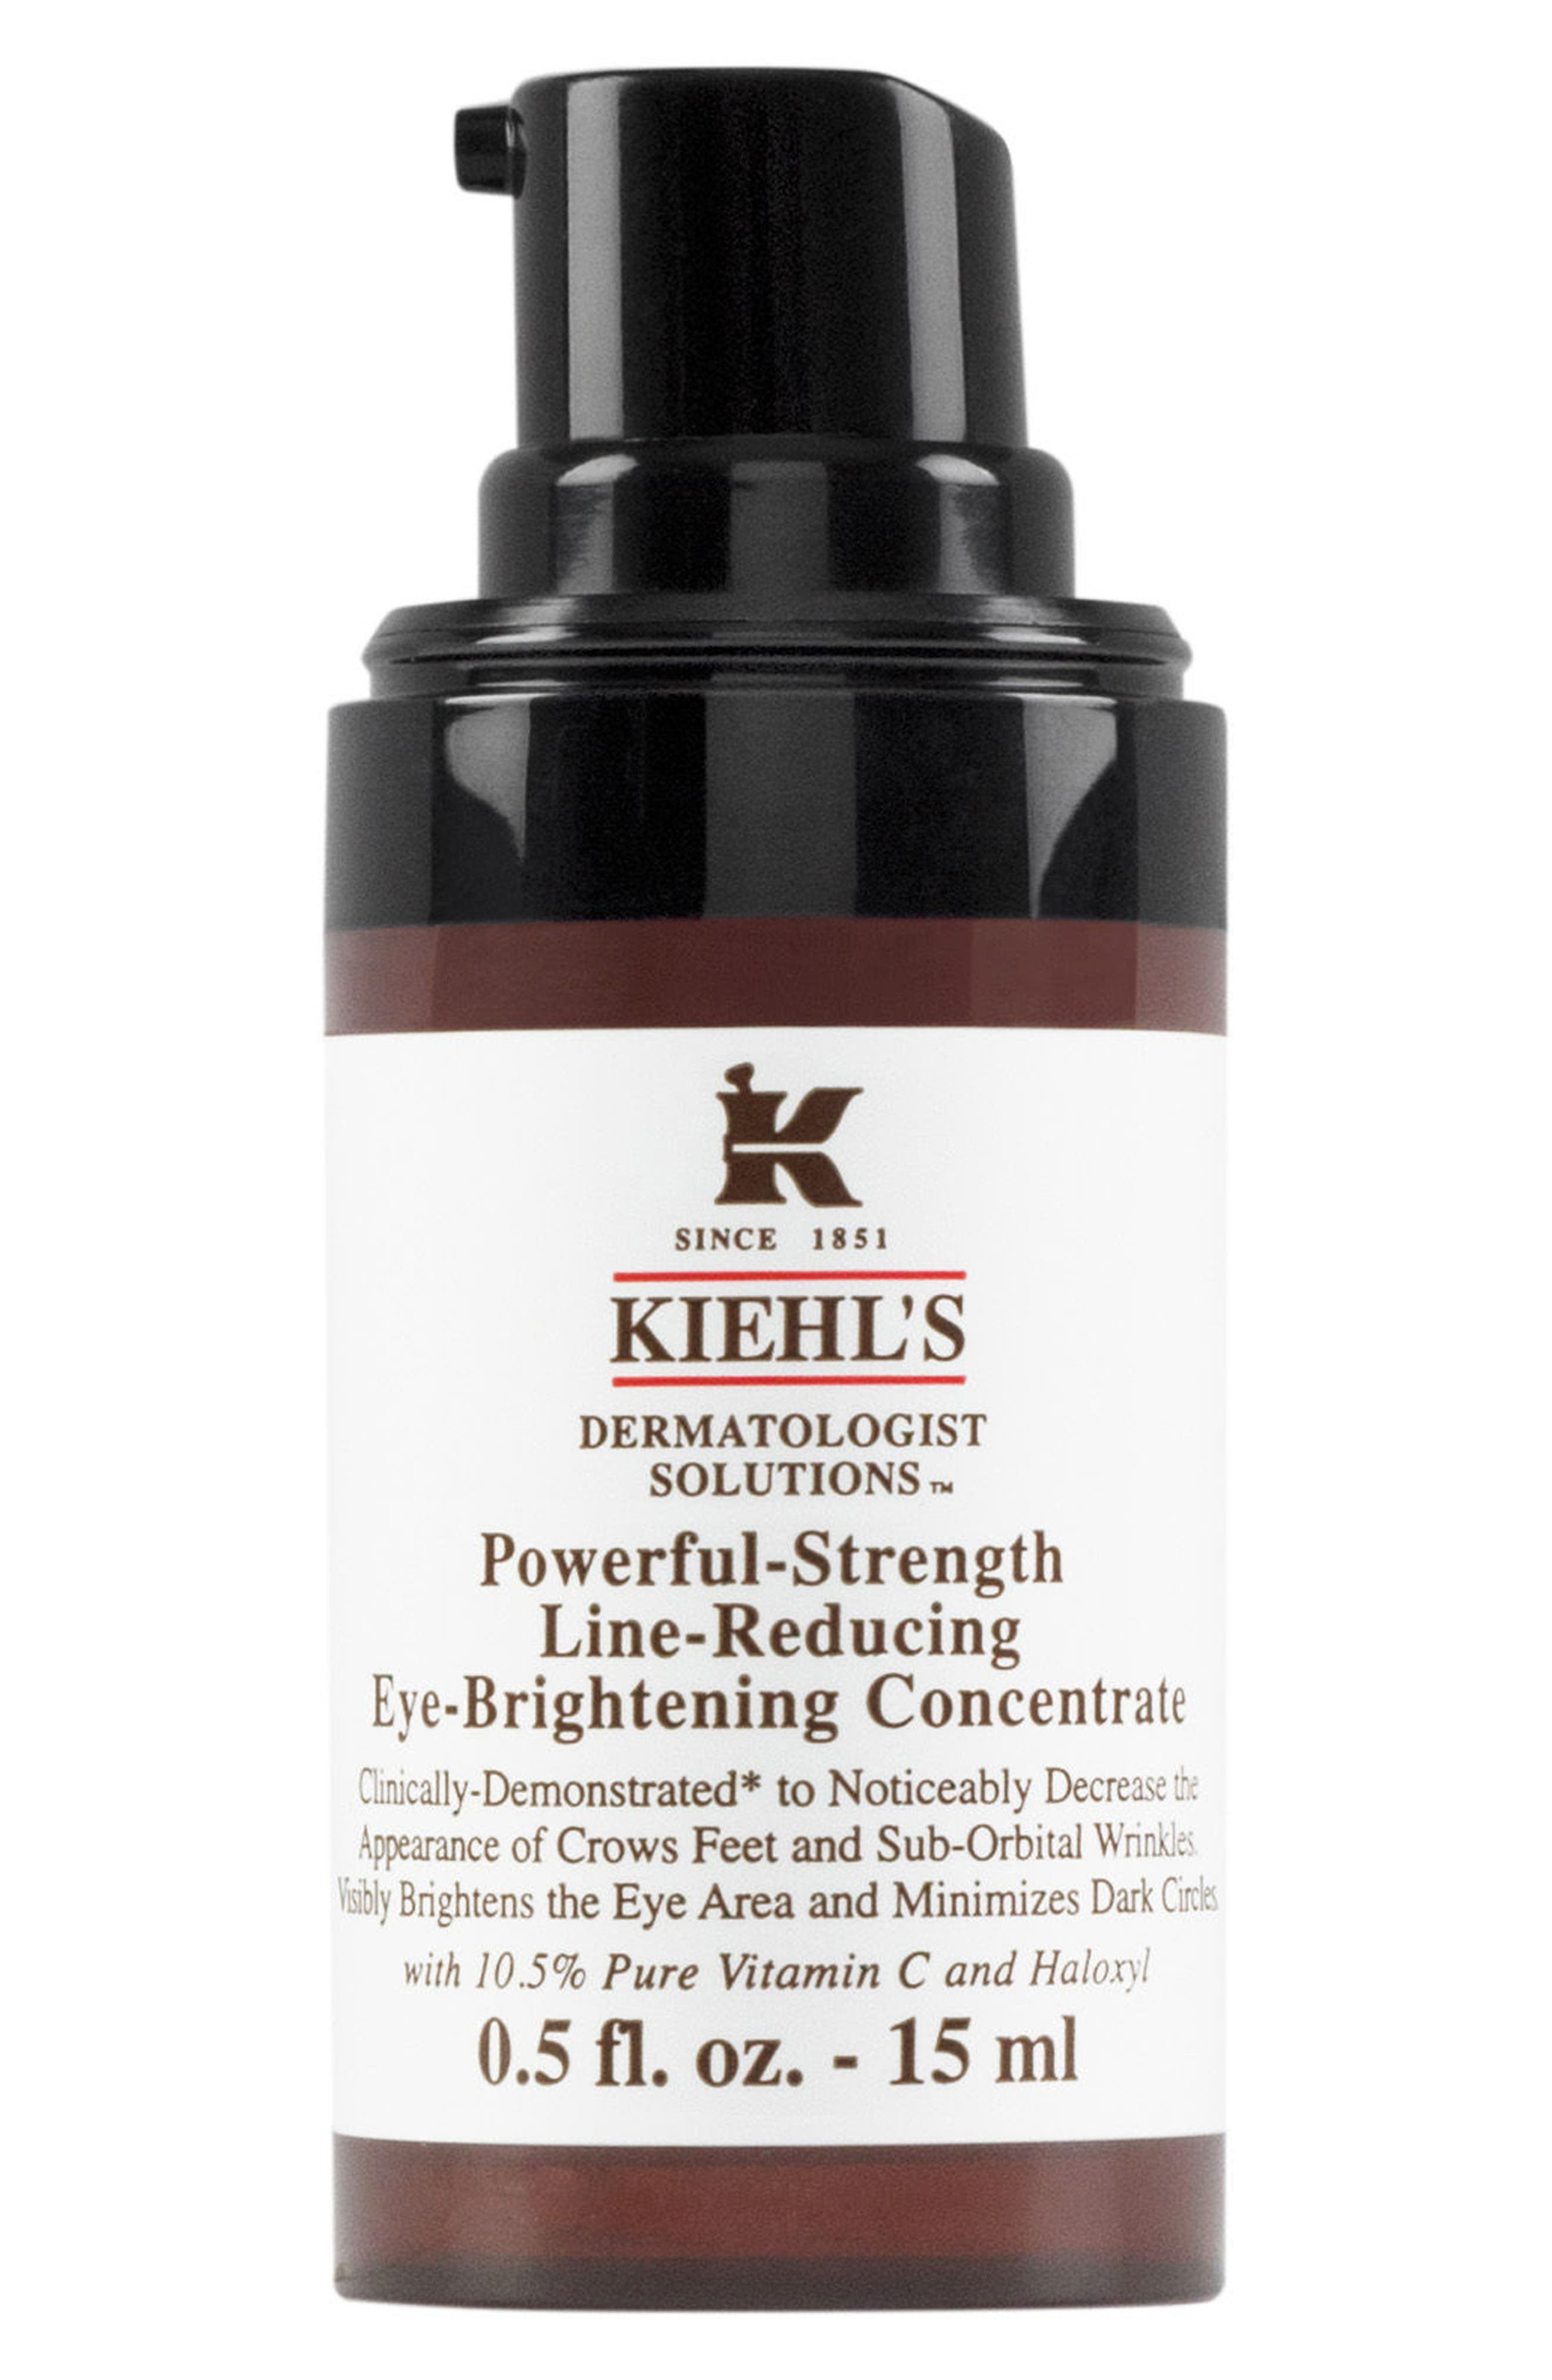 Kiehl's Since 1851 'Dermatologist Solutions™' Powerful-Strength Line-Reducing Eye-Brightening Concentrate